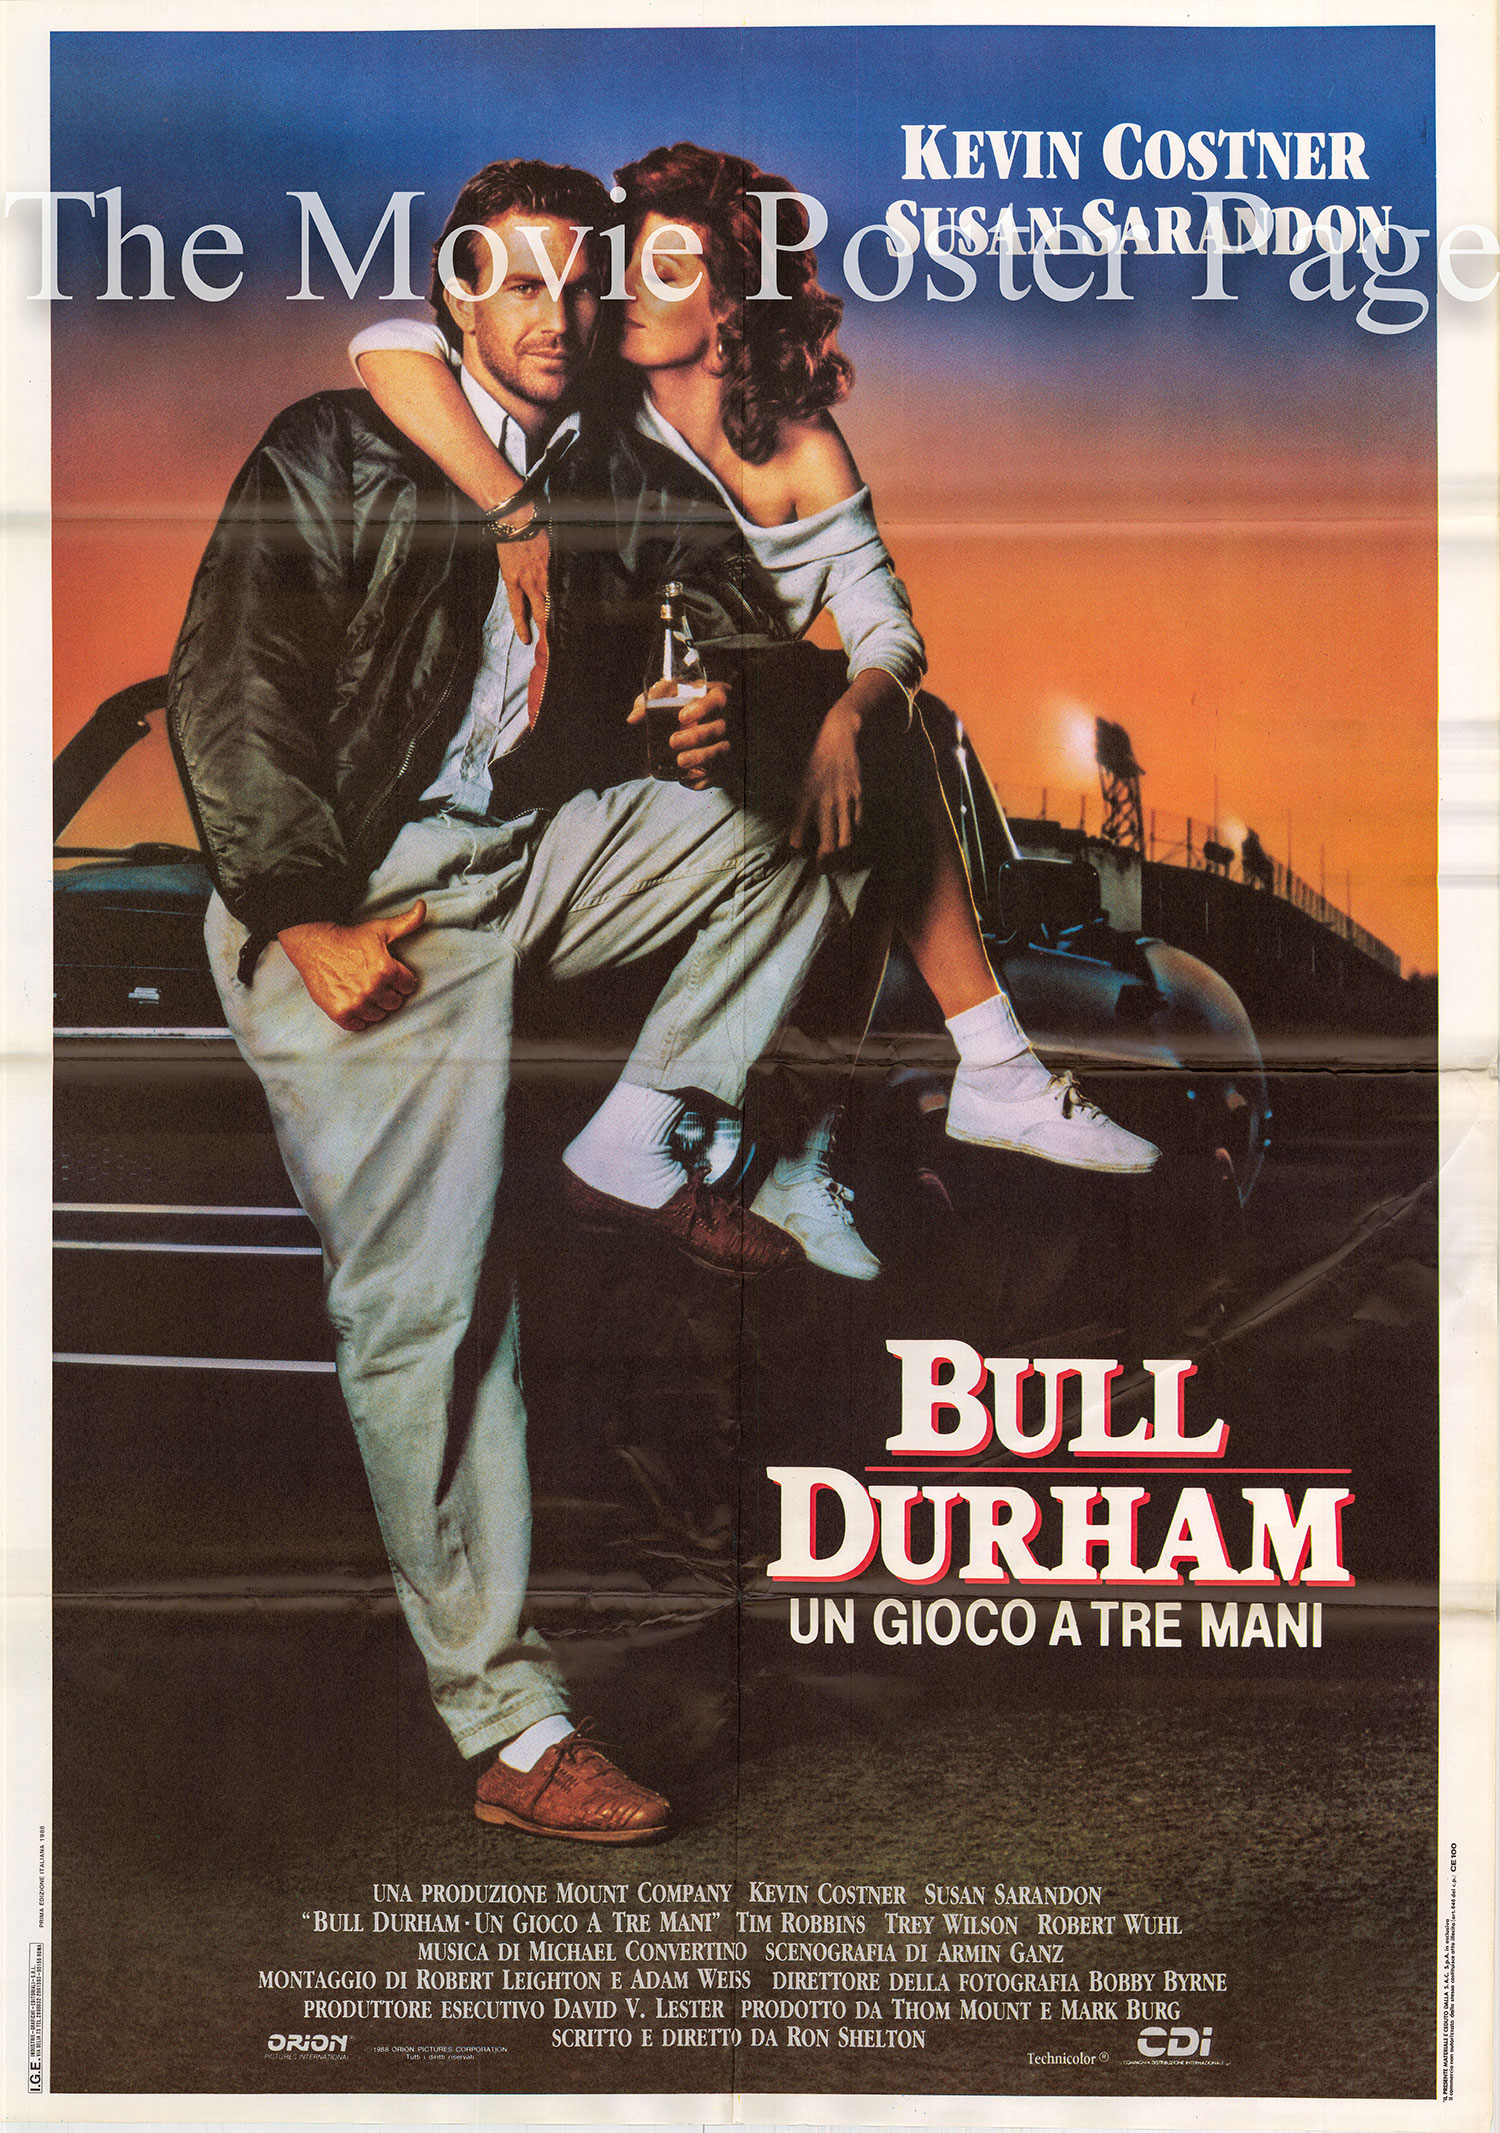 Pictured is an Italian two-sheet poster made to promote the 1988 Ron Shelton film Bull Durham starring Kevin Costner.